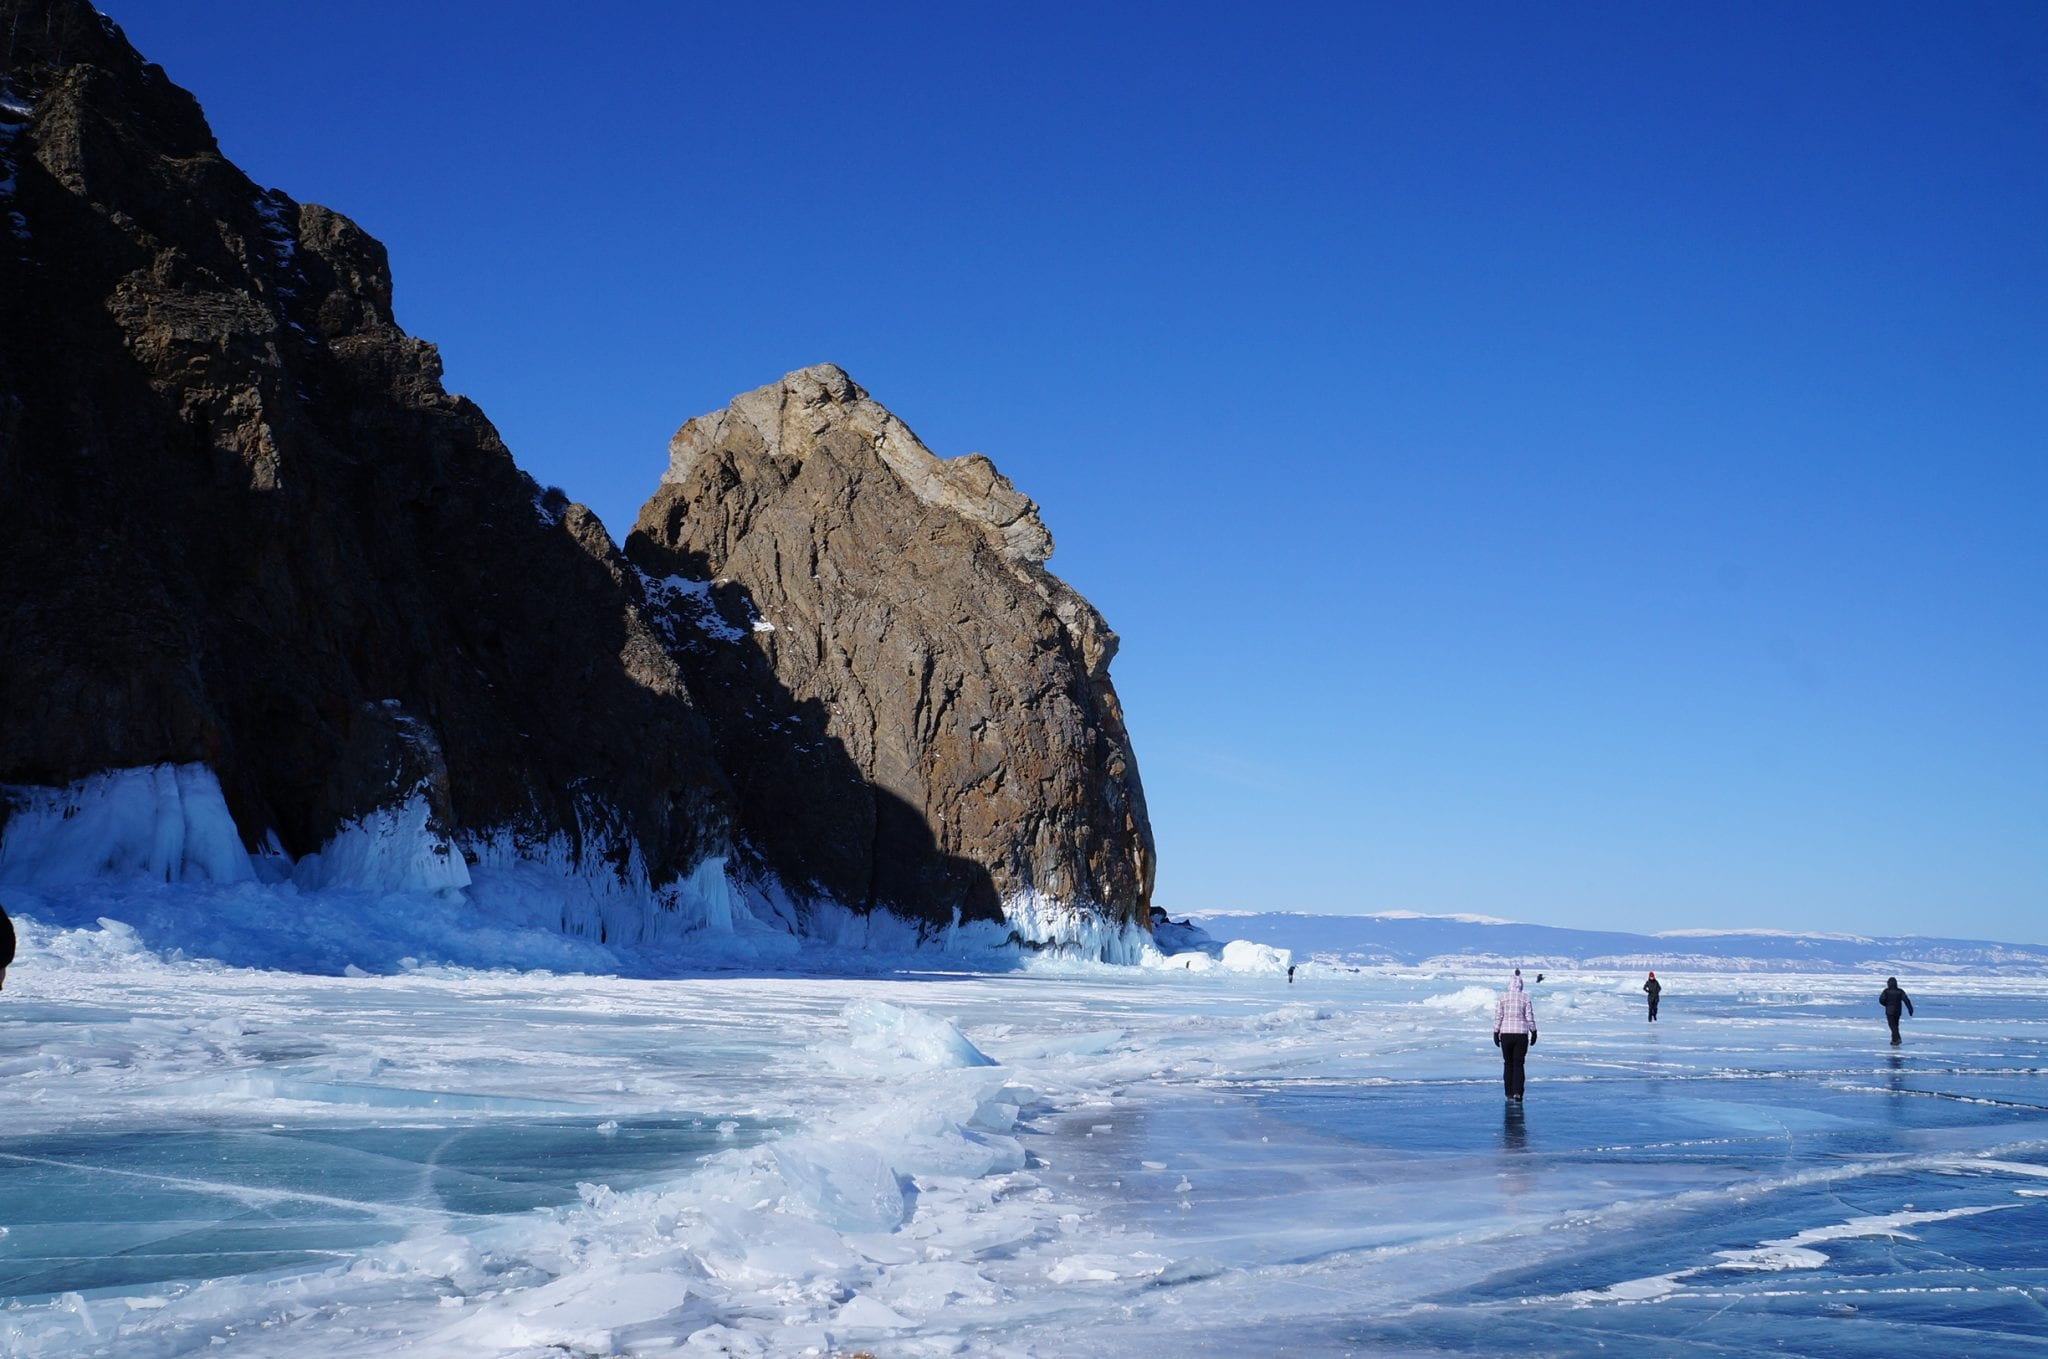 Trans-Siberian Lake Baikal view in winter